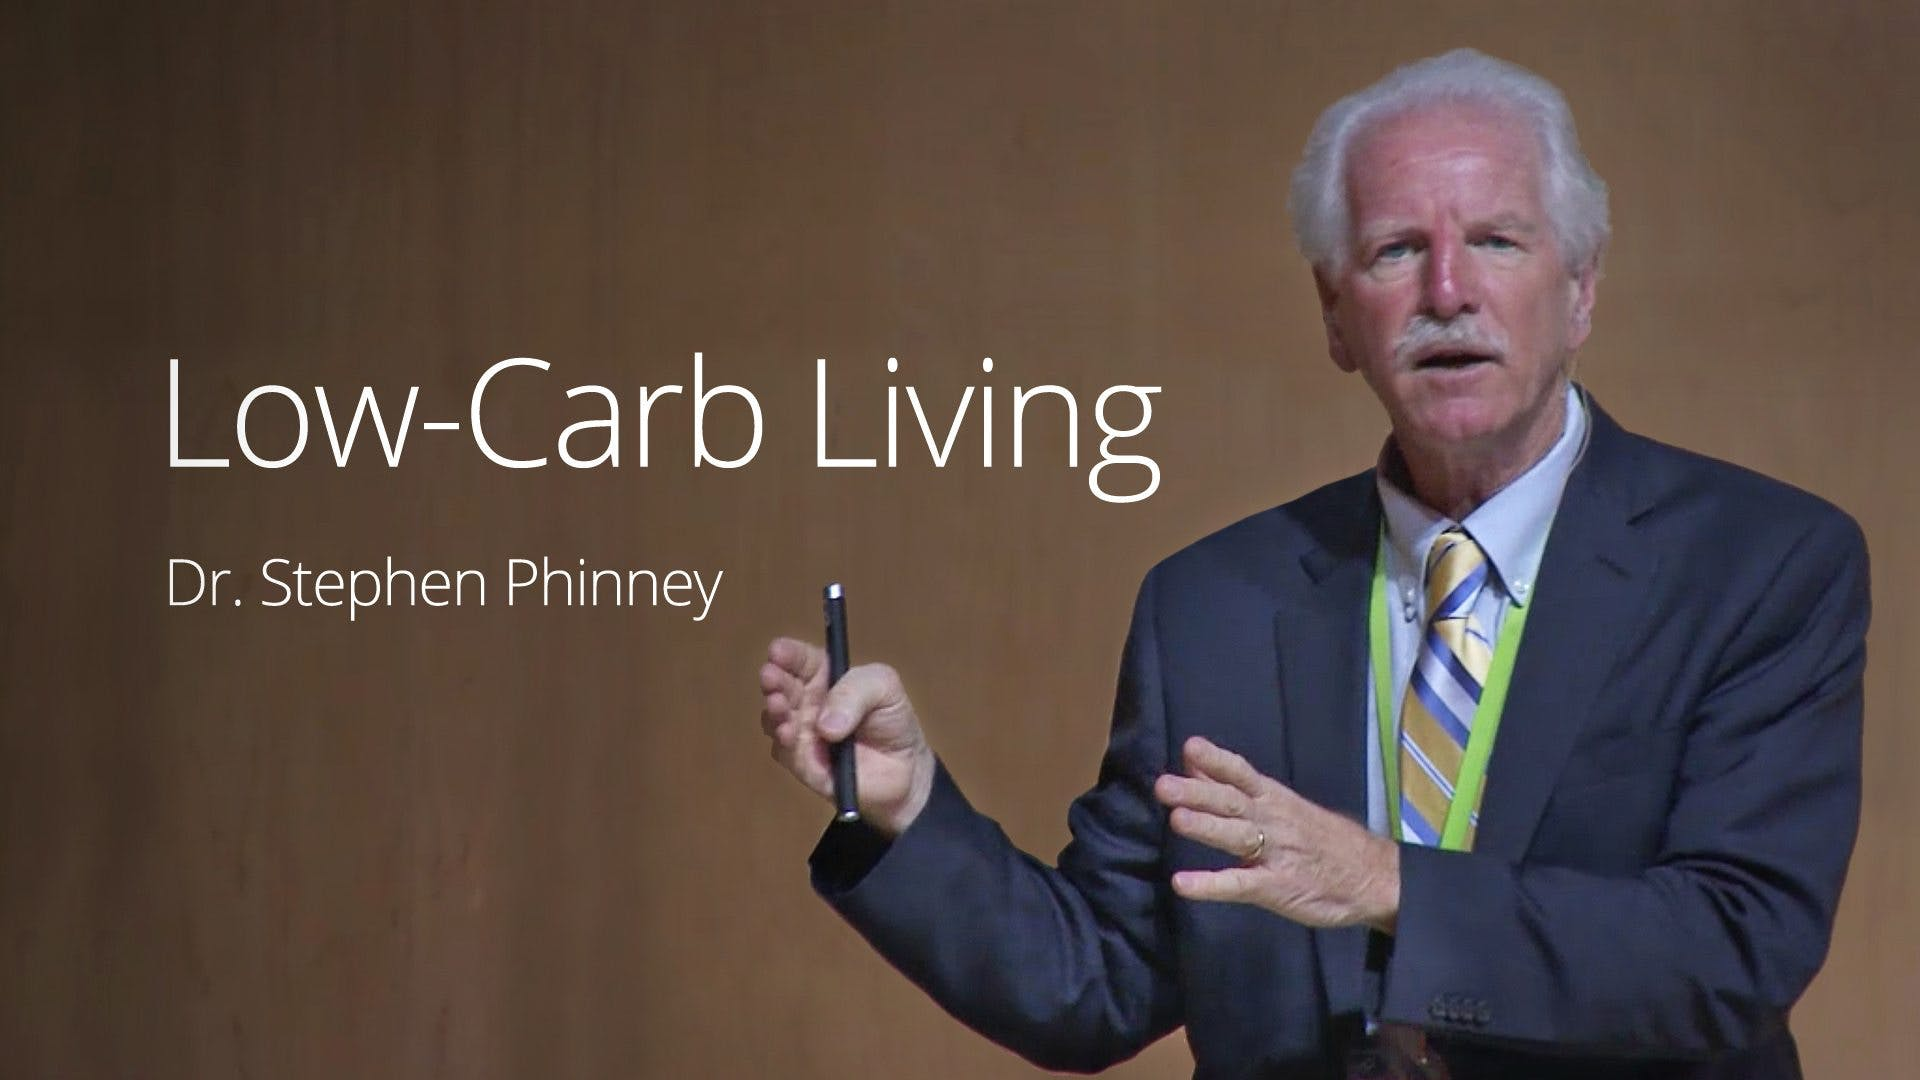 Low-Carb Living – Dr. Stephen Phinney